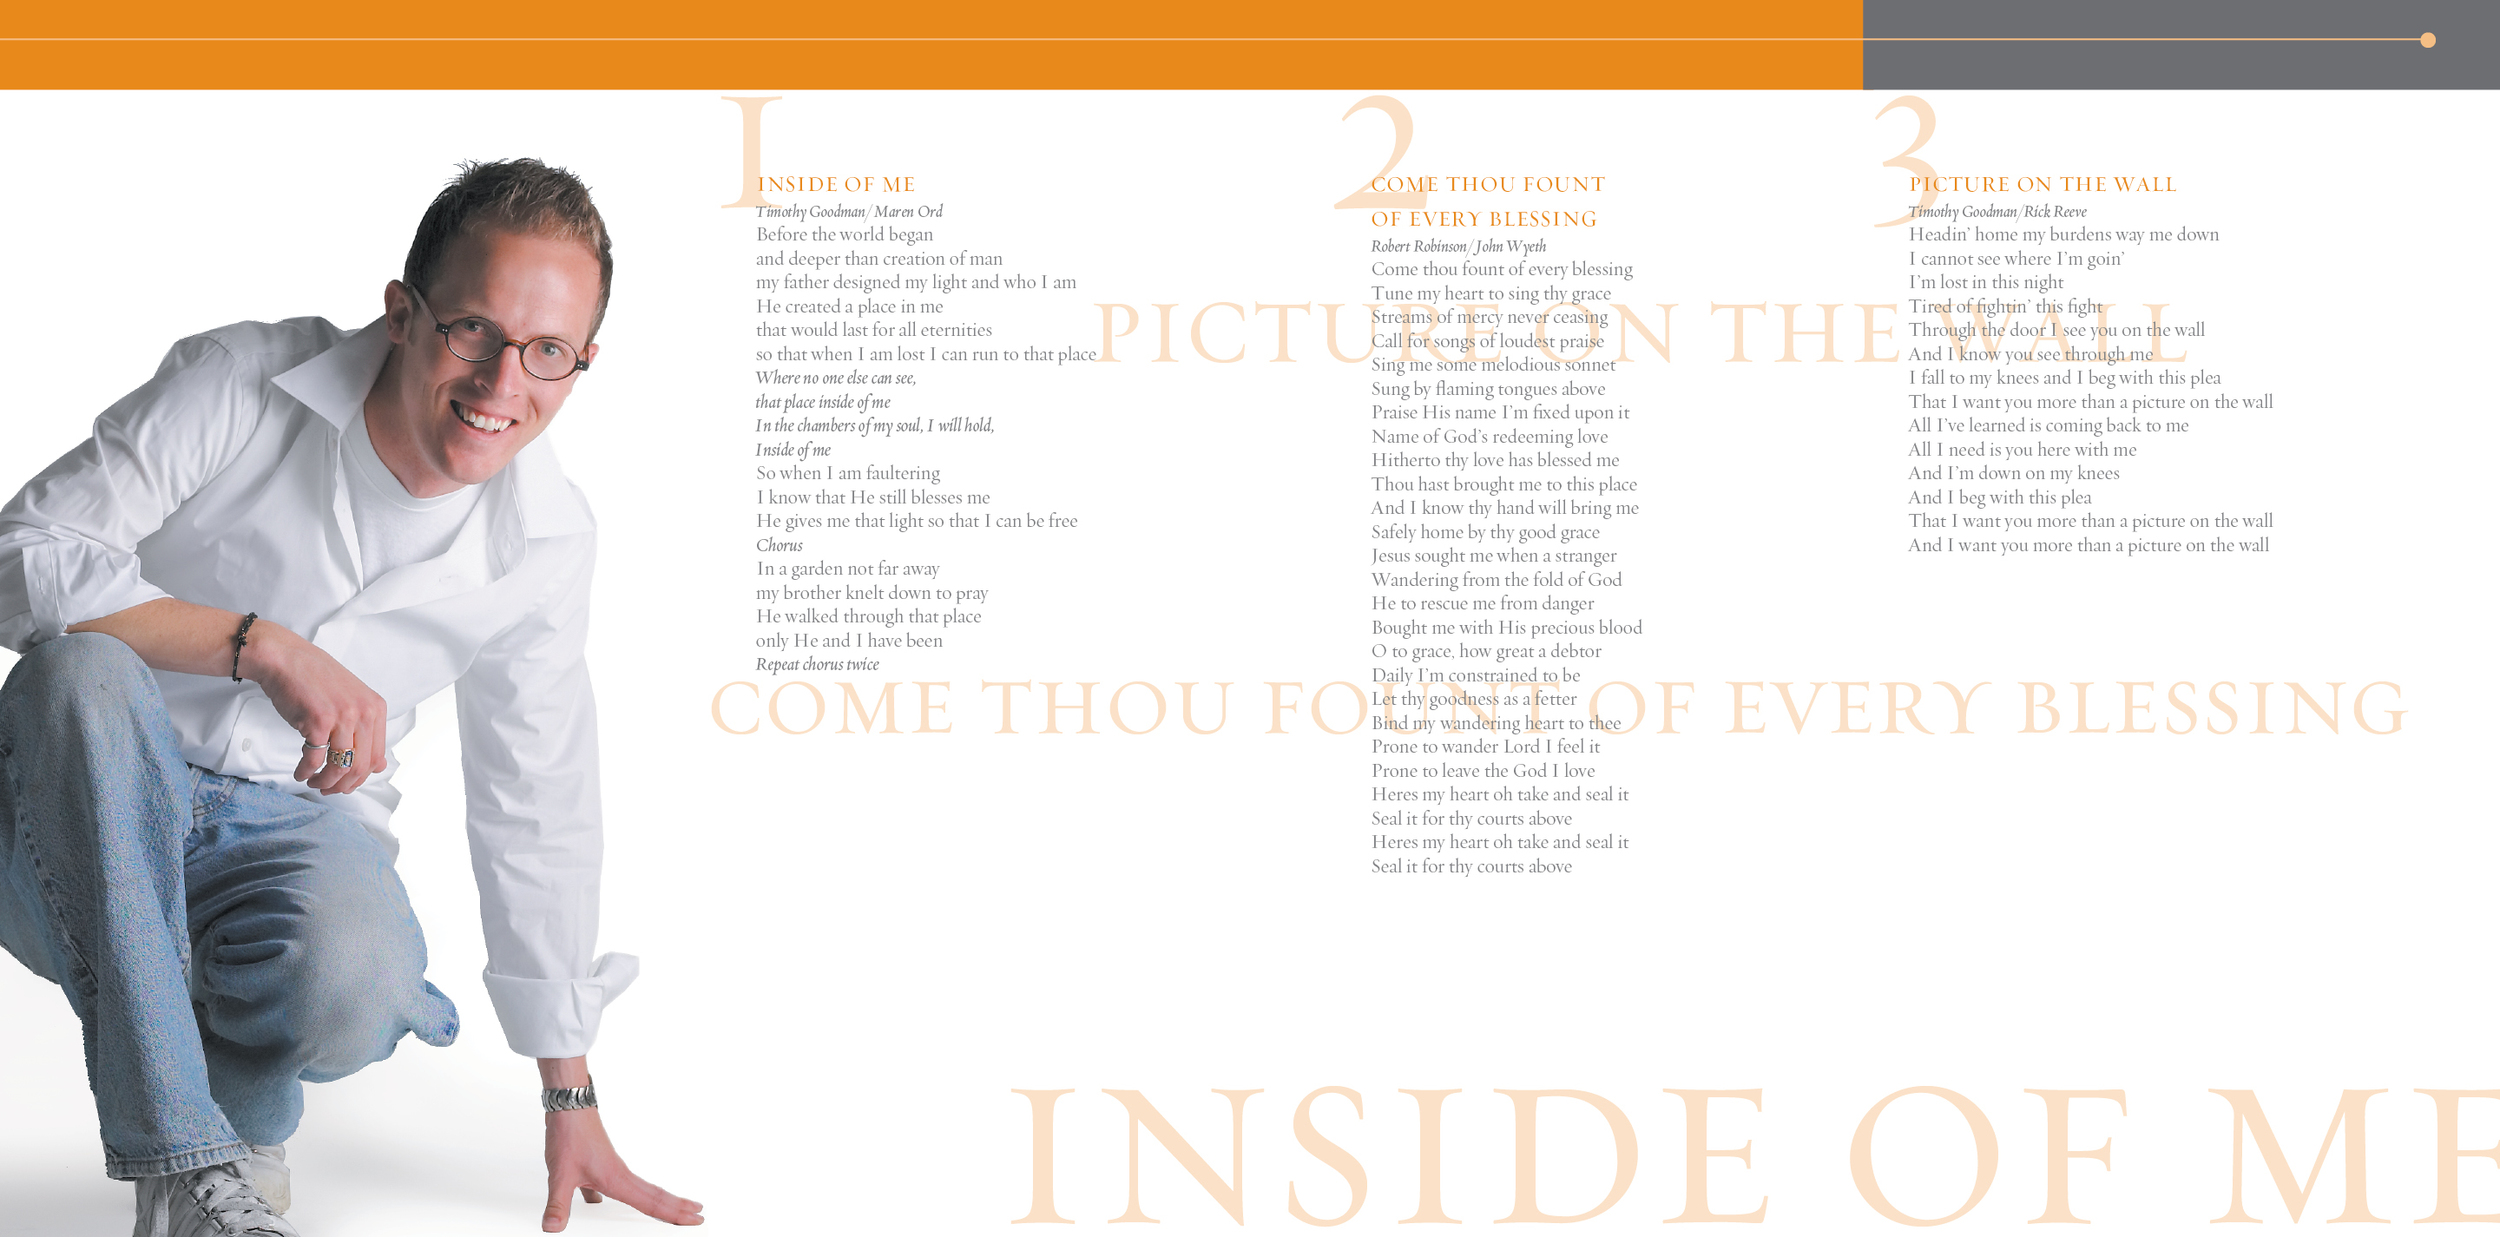 Tim CD booklet3.jpg